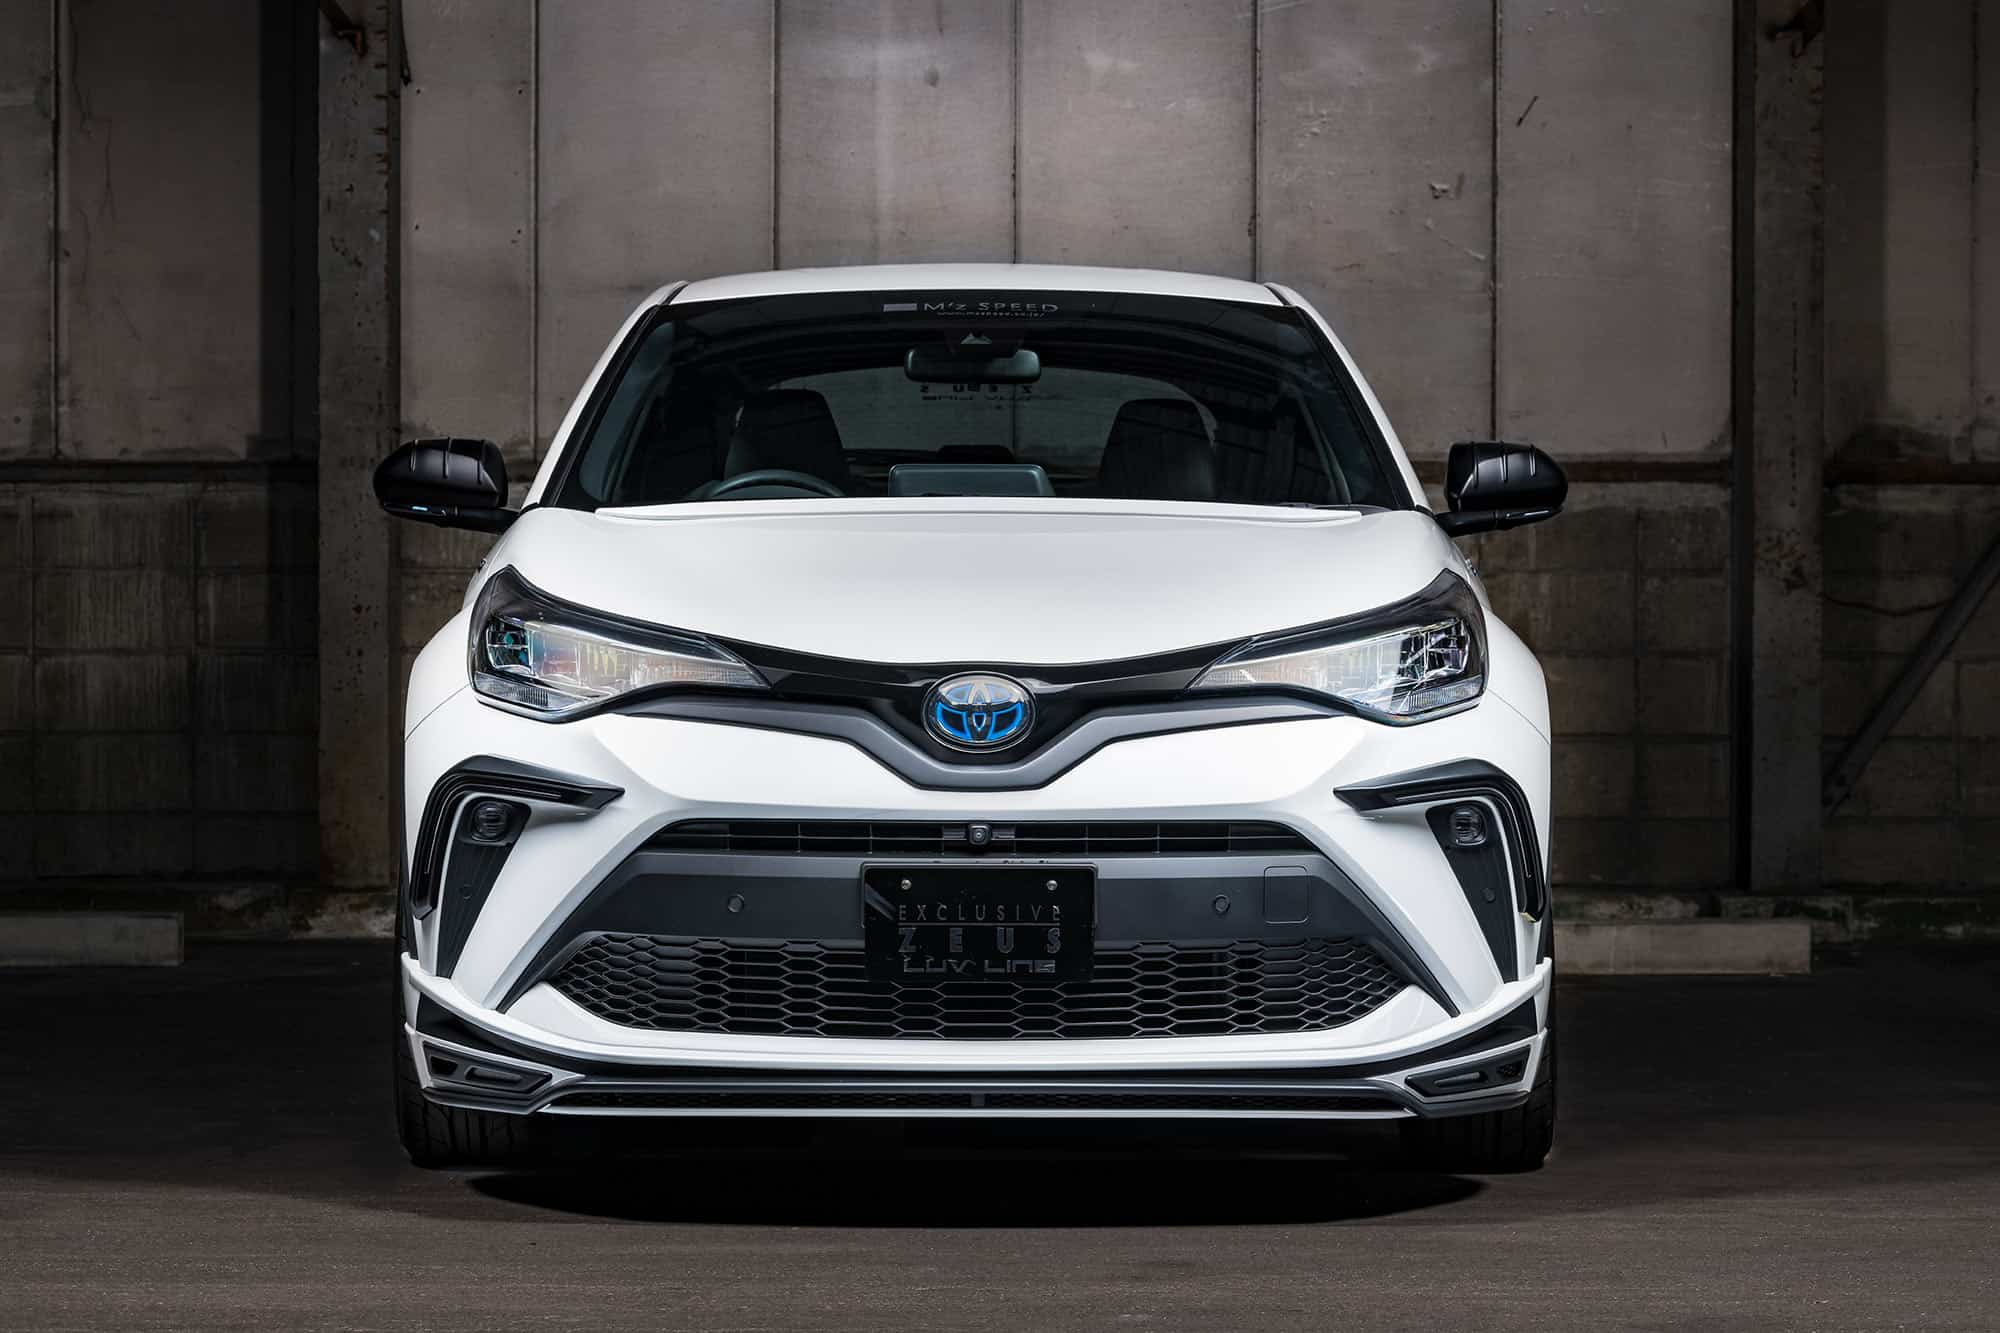 Toyota C-HR body kit includes by MZ Speed